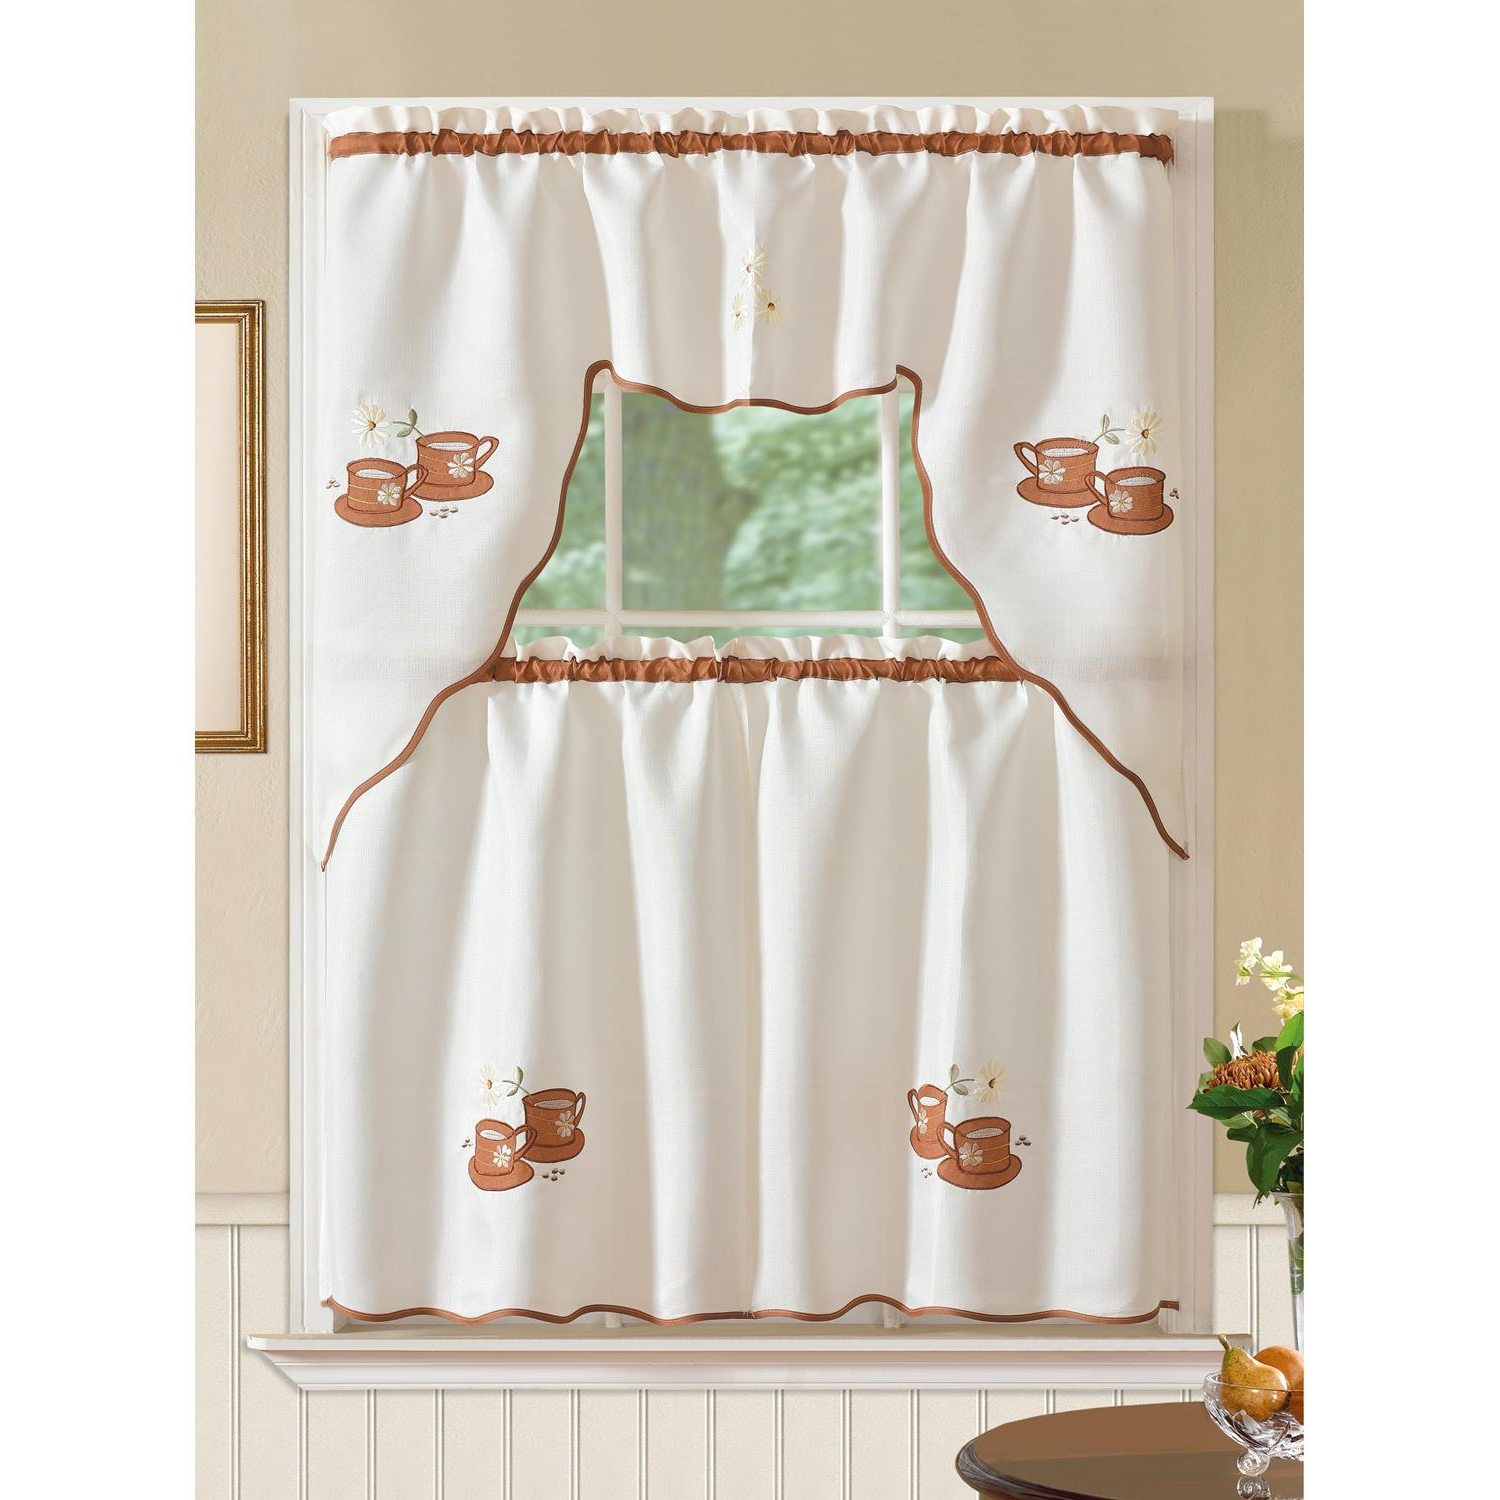 Widely Used Details About Imperial Coffee Jacquard Kitchen Curtain Set Throughout Coffee Embroidered Kitchen Curtain Tier Sets (View 4 of 20)